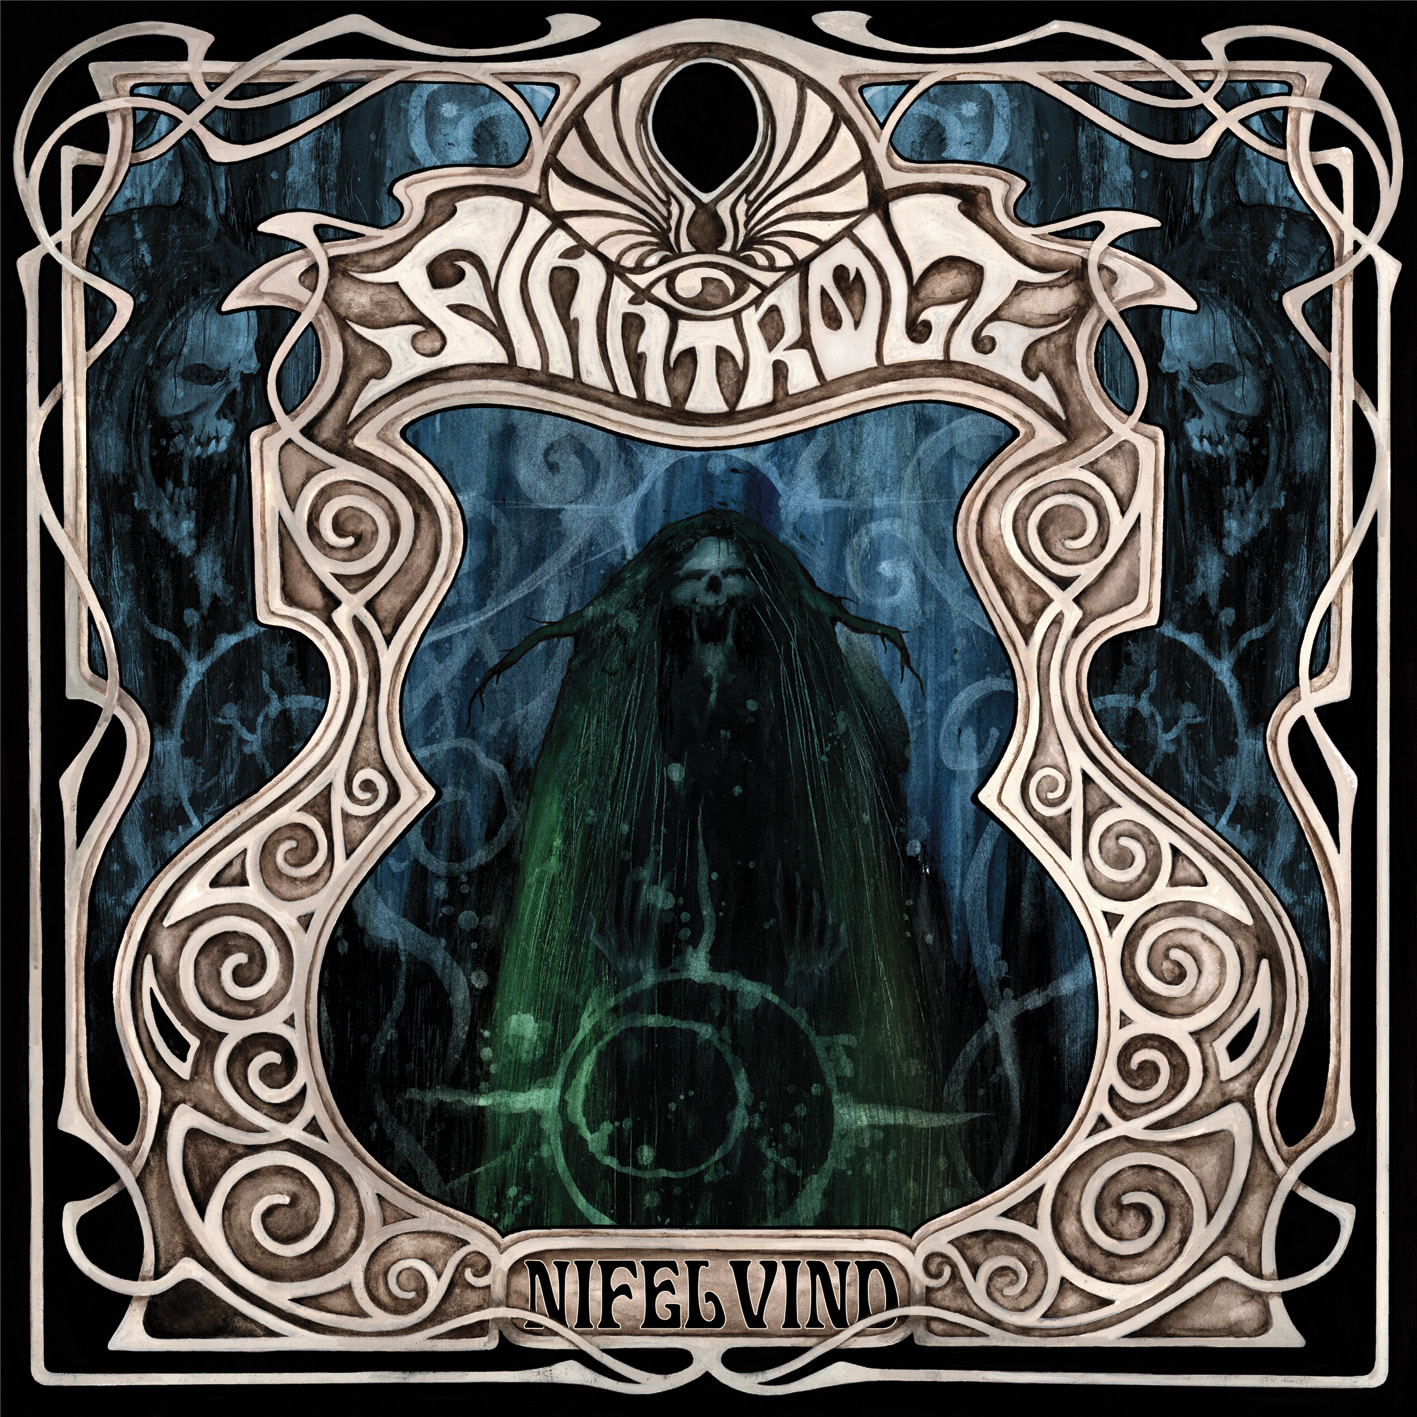 Finntroll – Nifelvind Review